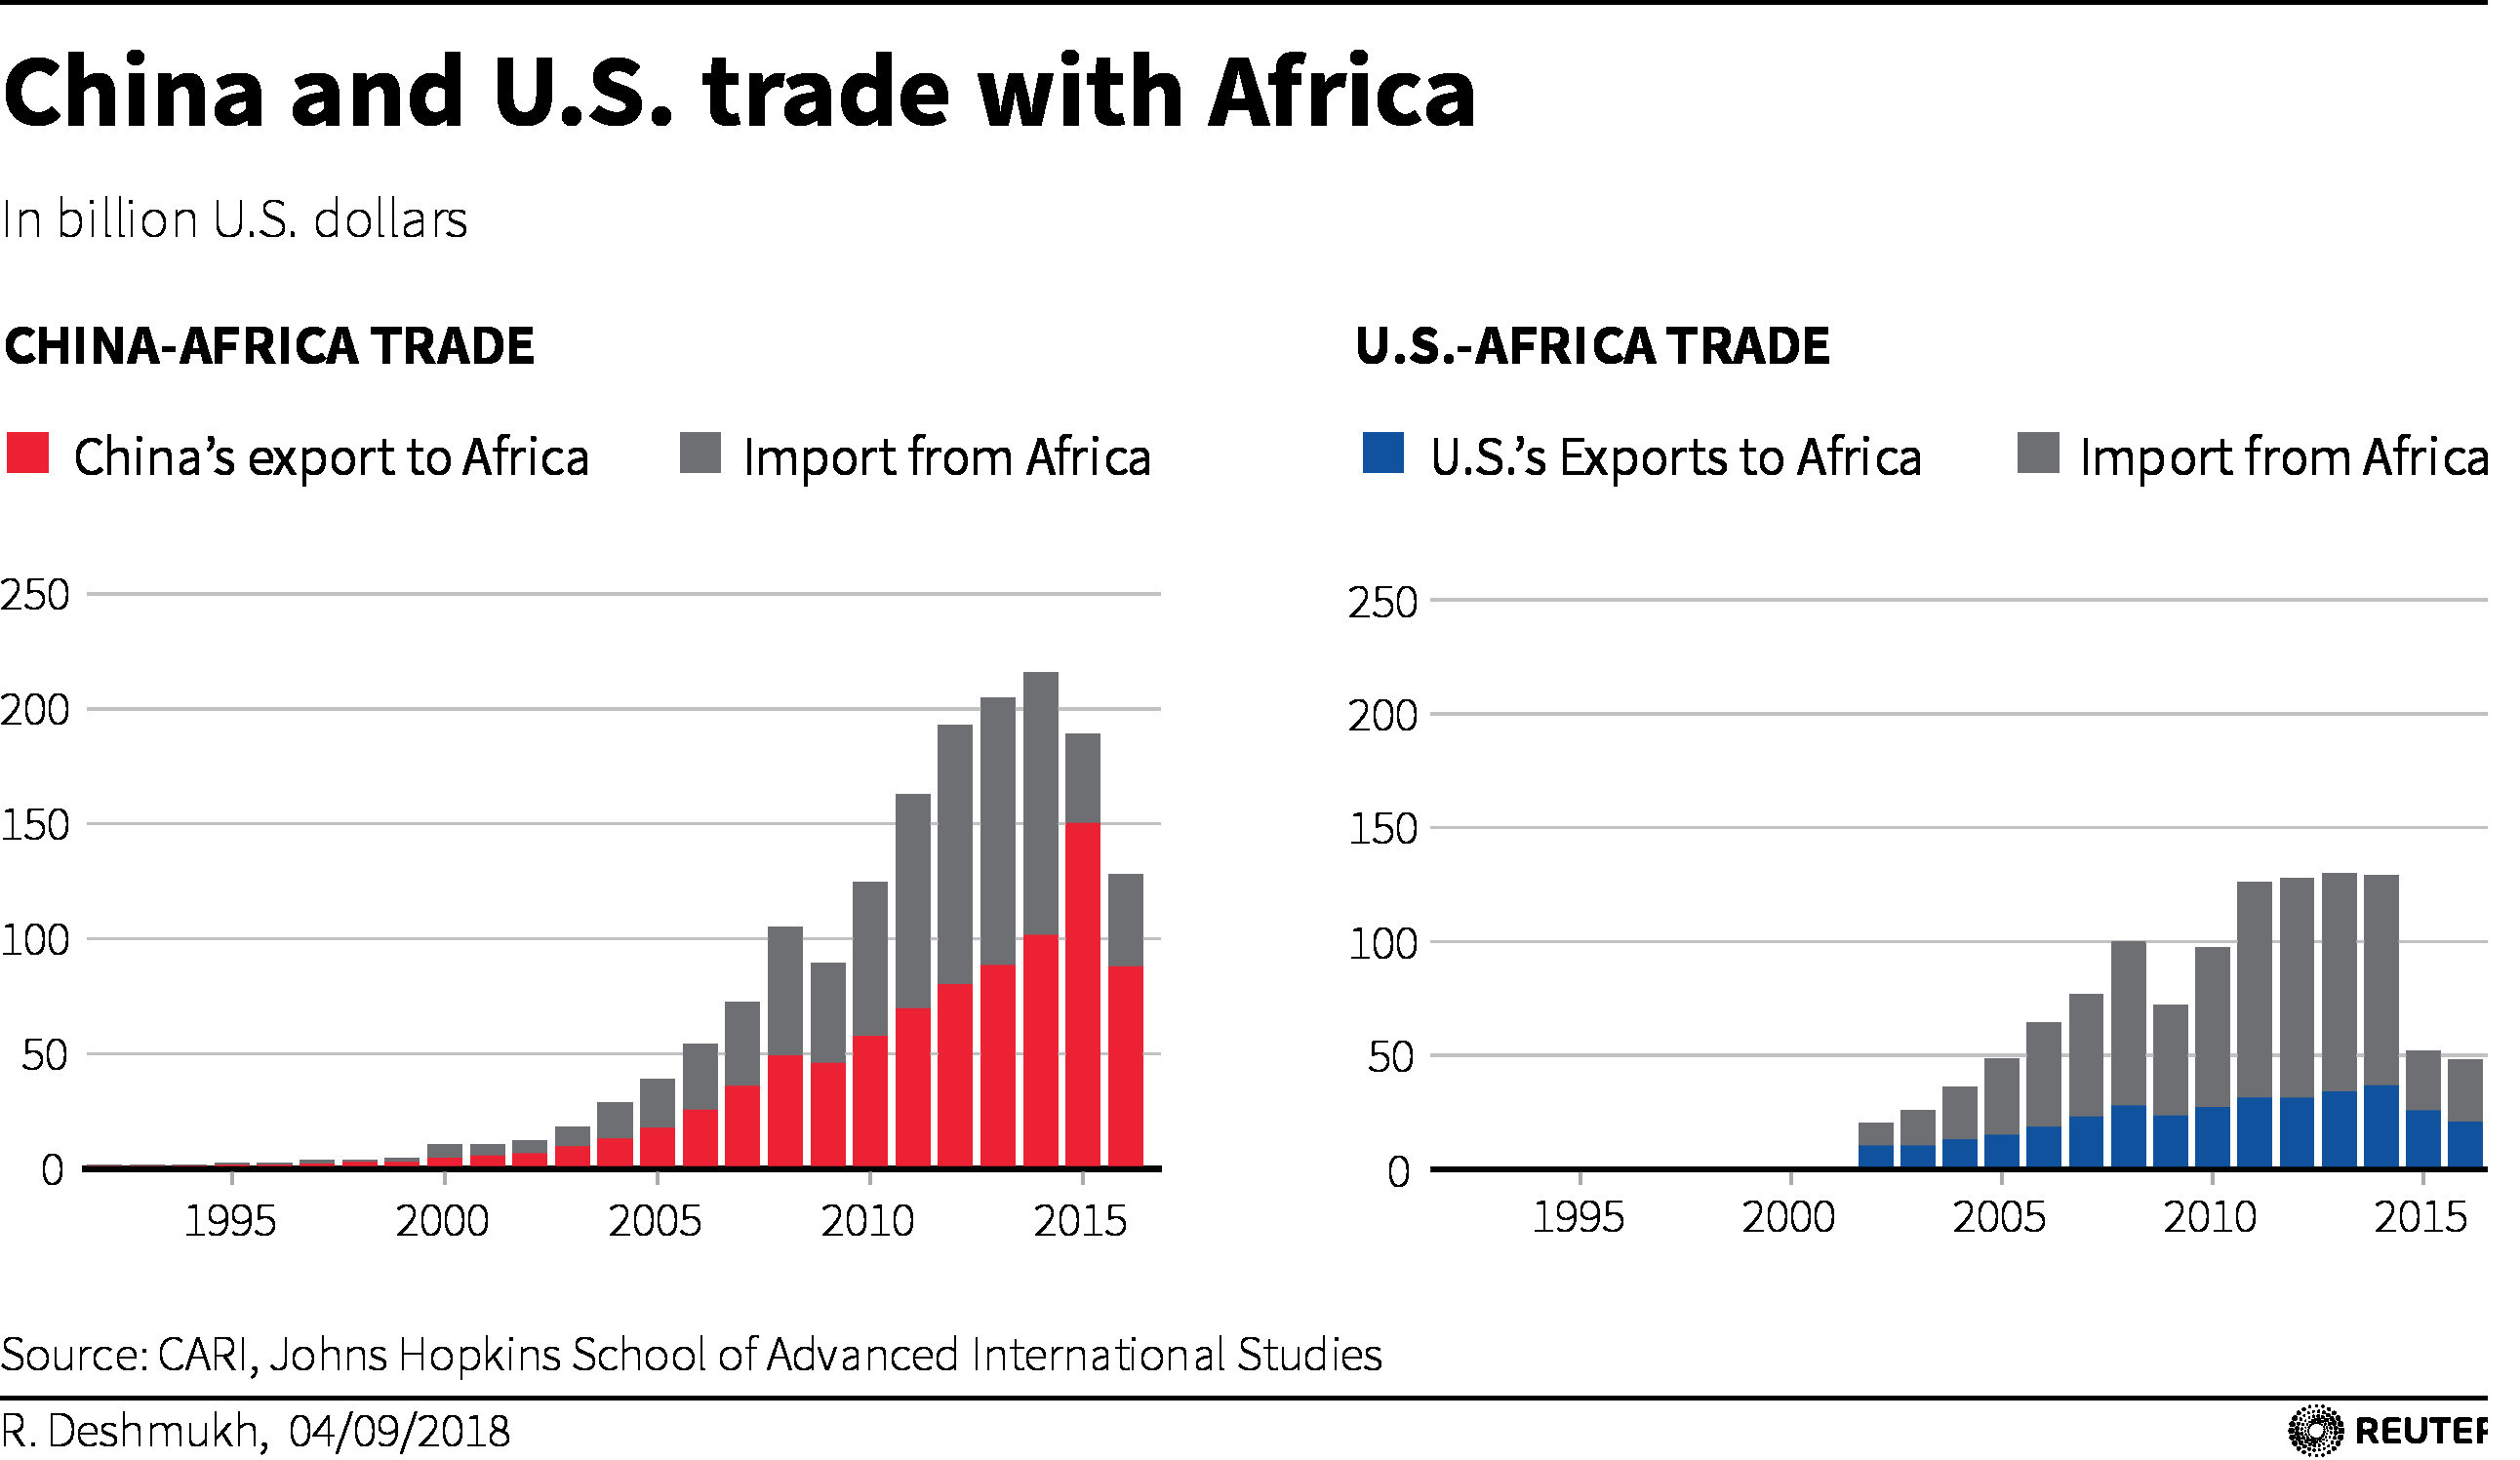 China and U.S. imports from and exports to Africa